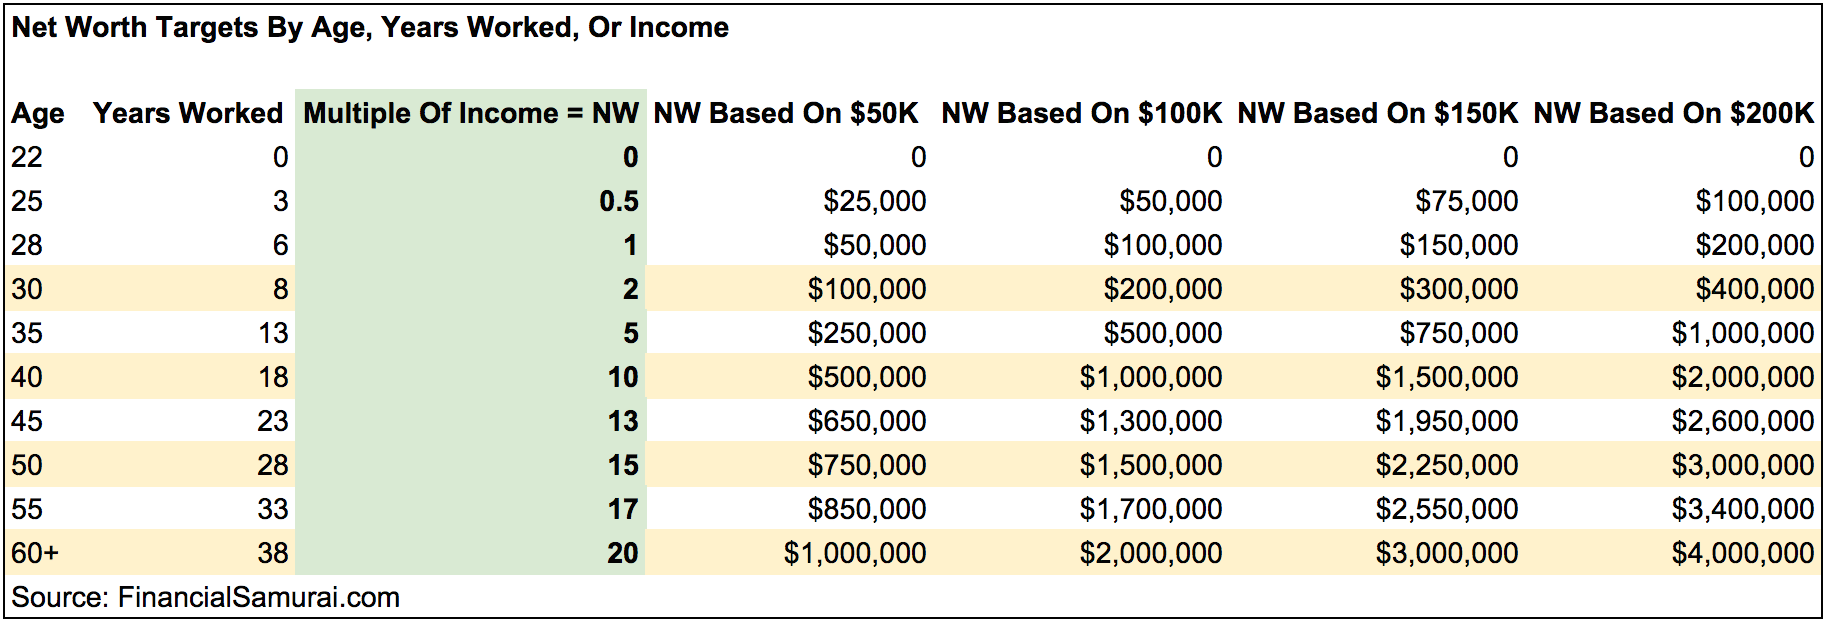 Net Worth Targets By Age, Work Experience, Income - Net Worth or Savings Guide